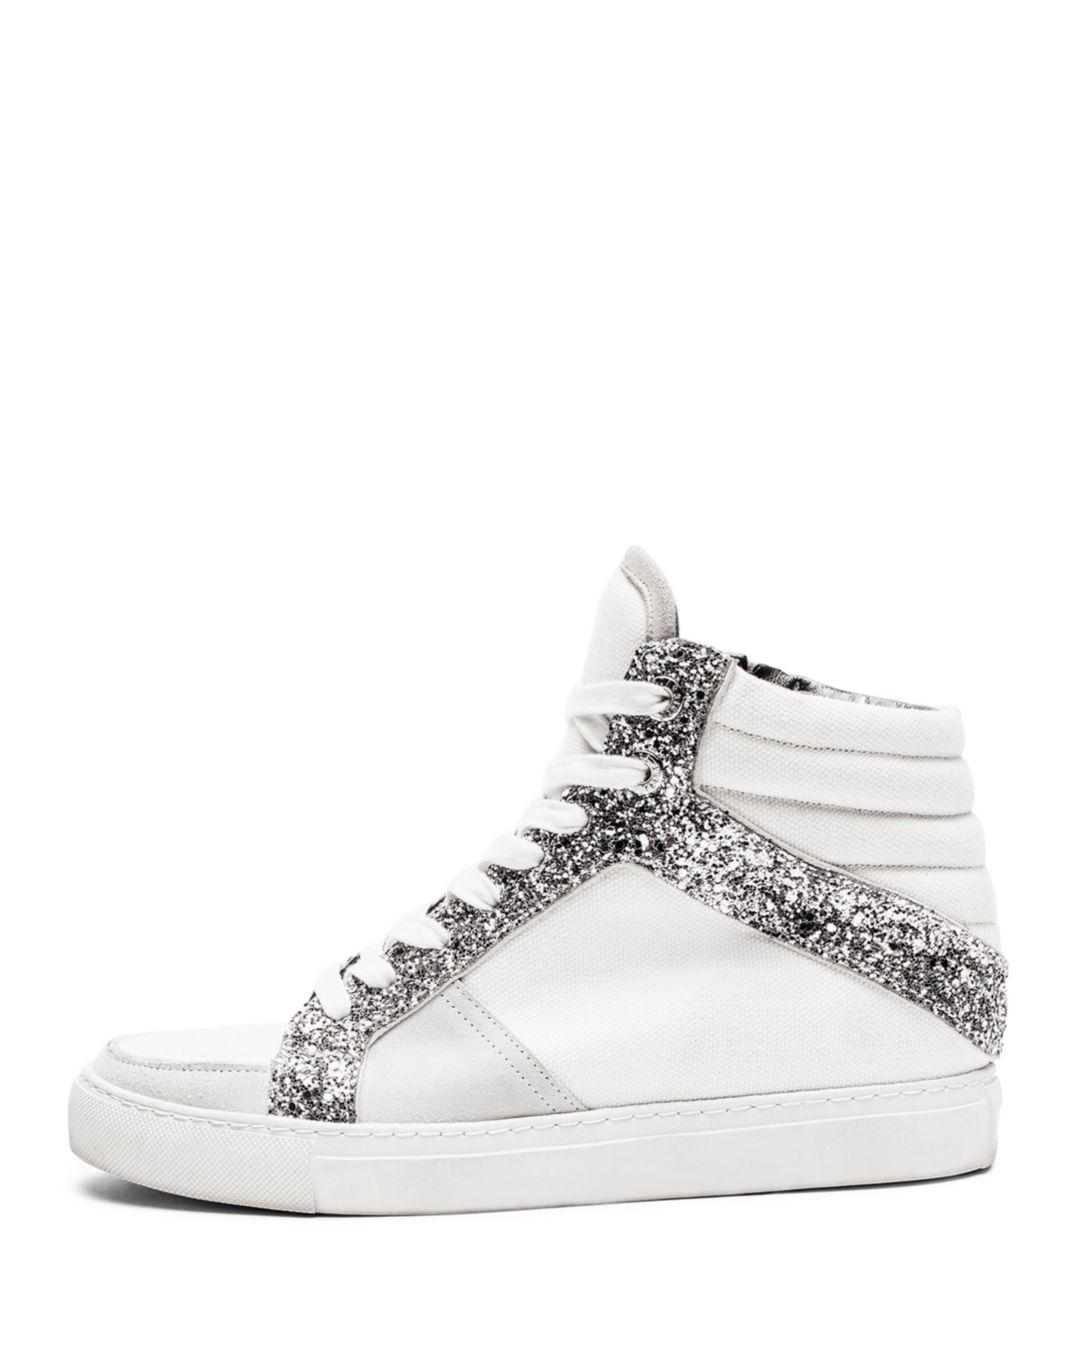 Zadig & Voltaire Zv1747 Mid Glit Sneakers in White